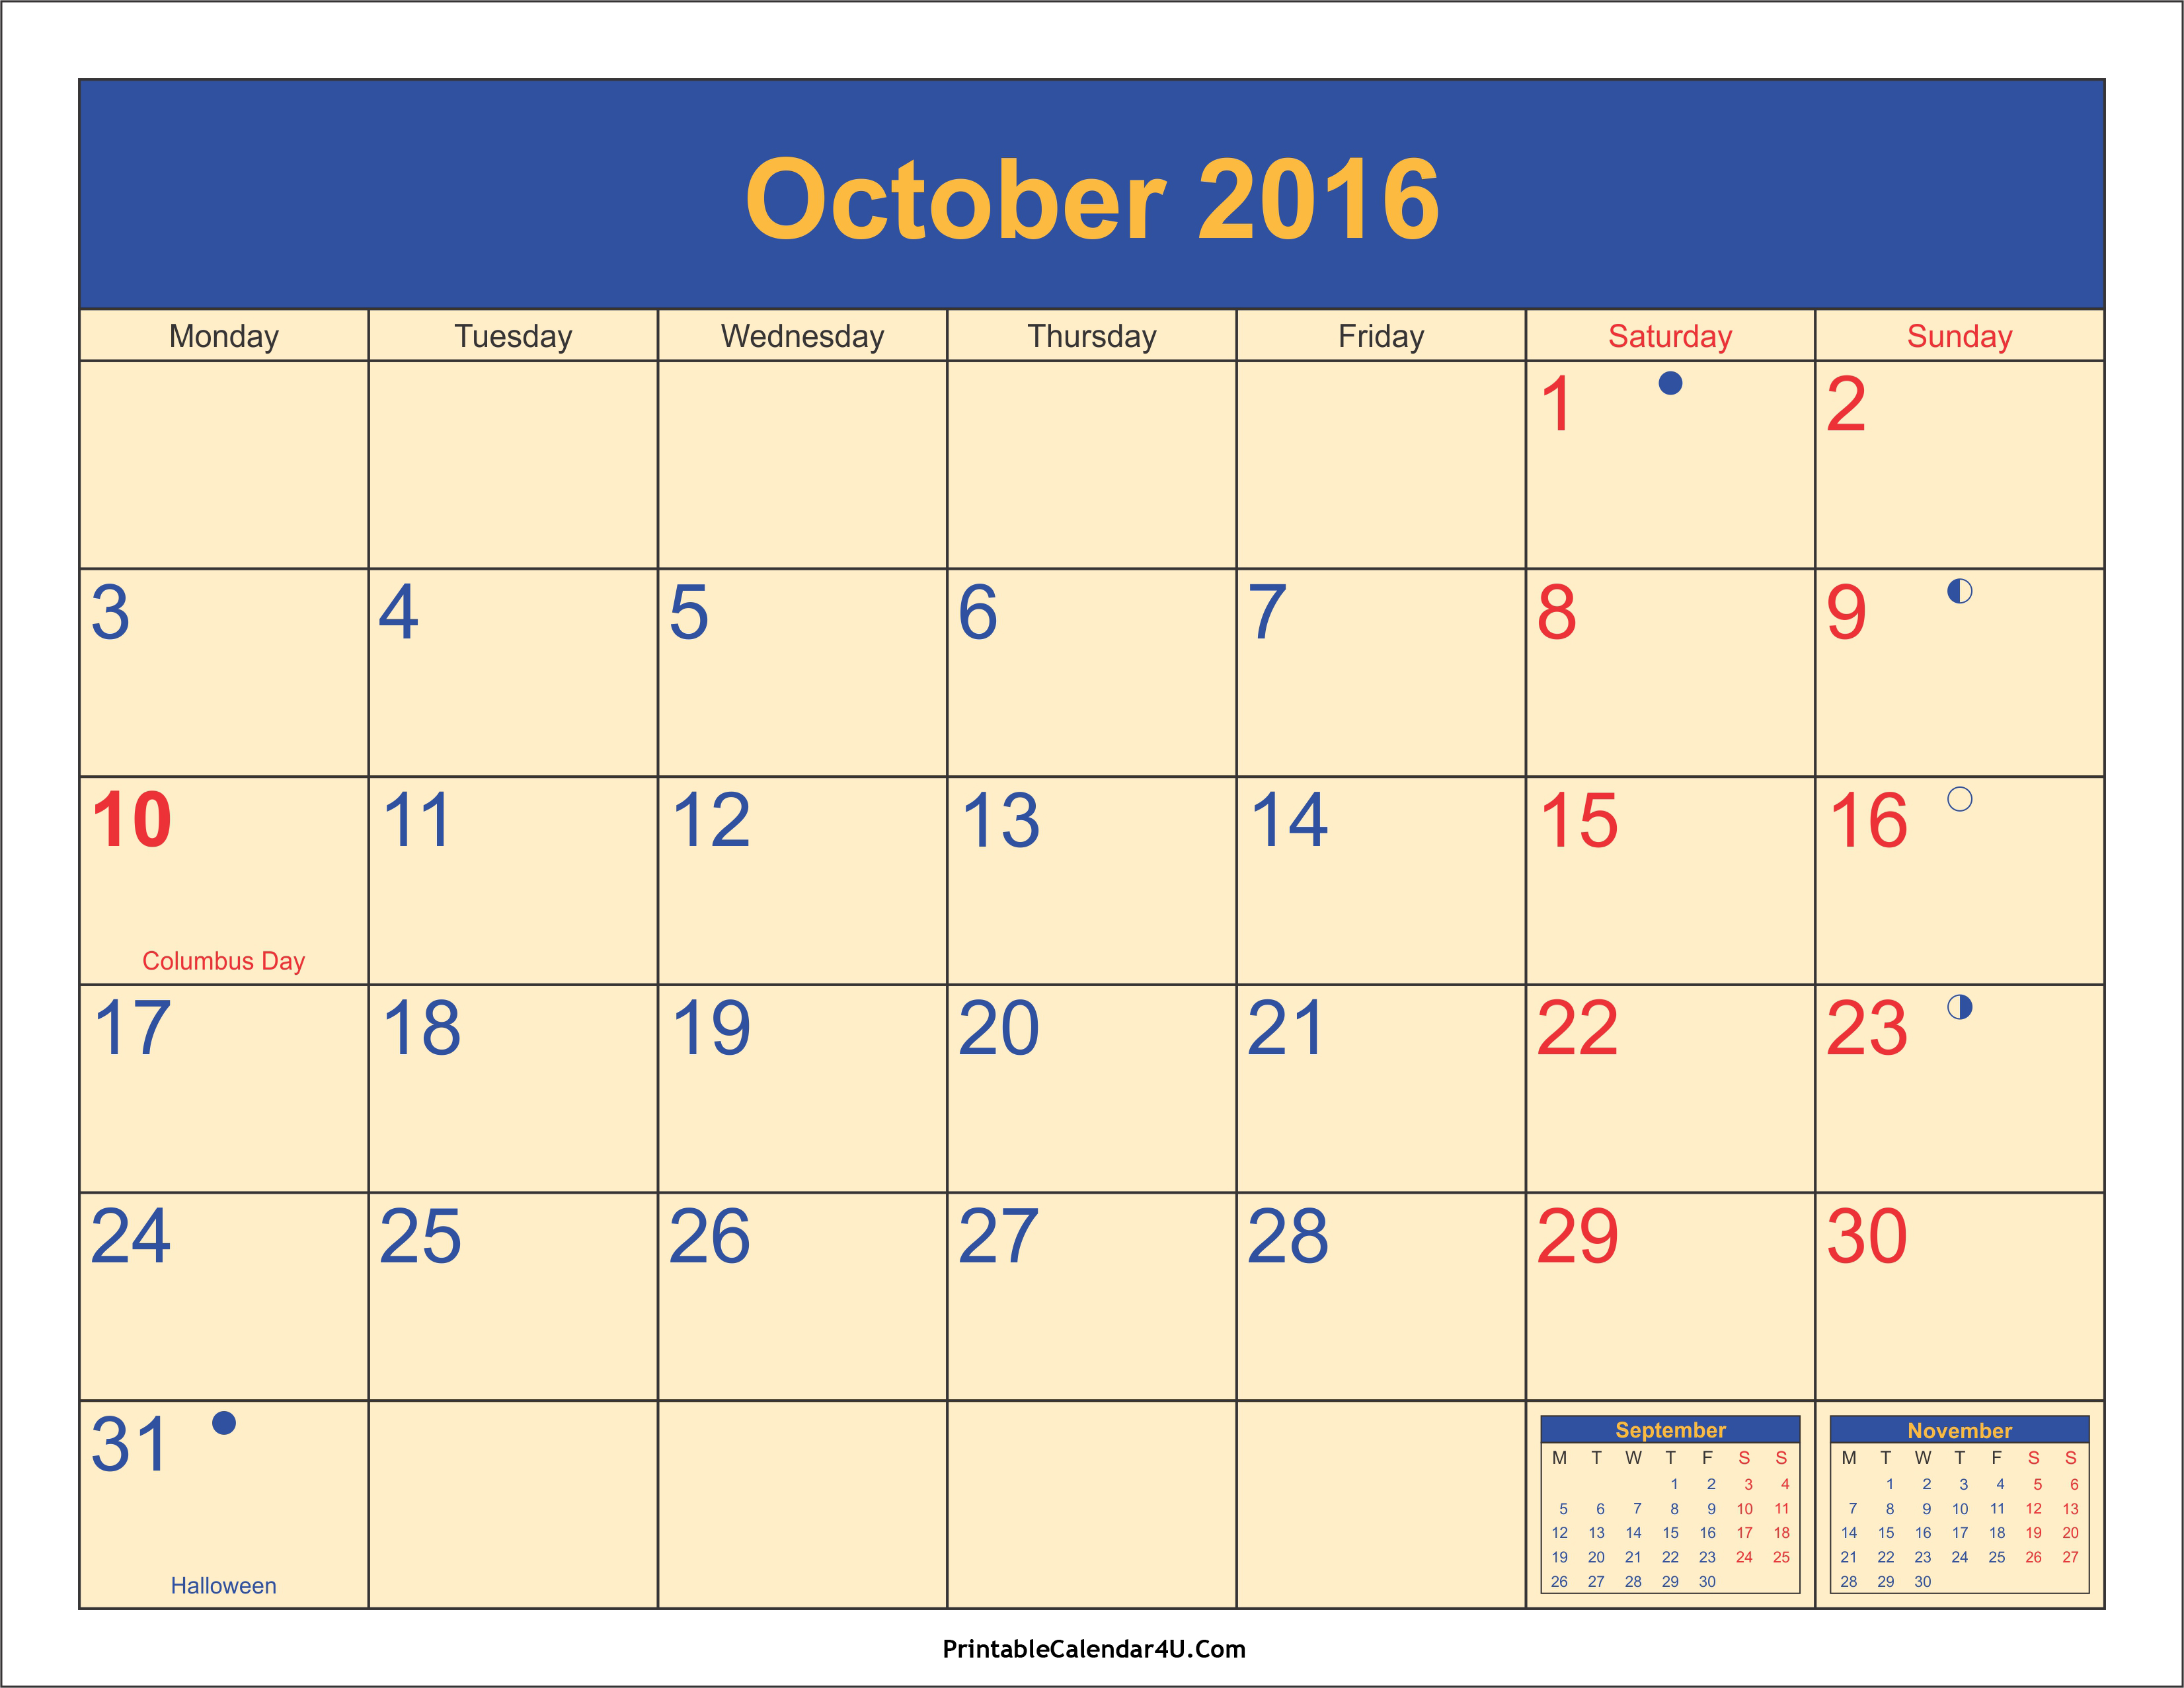 October 2016 Calendar Printable with Holidays PDF and